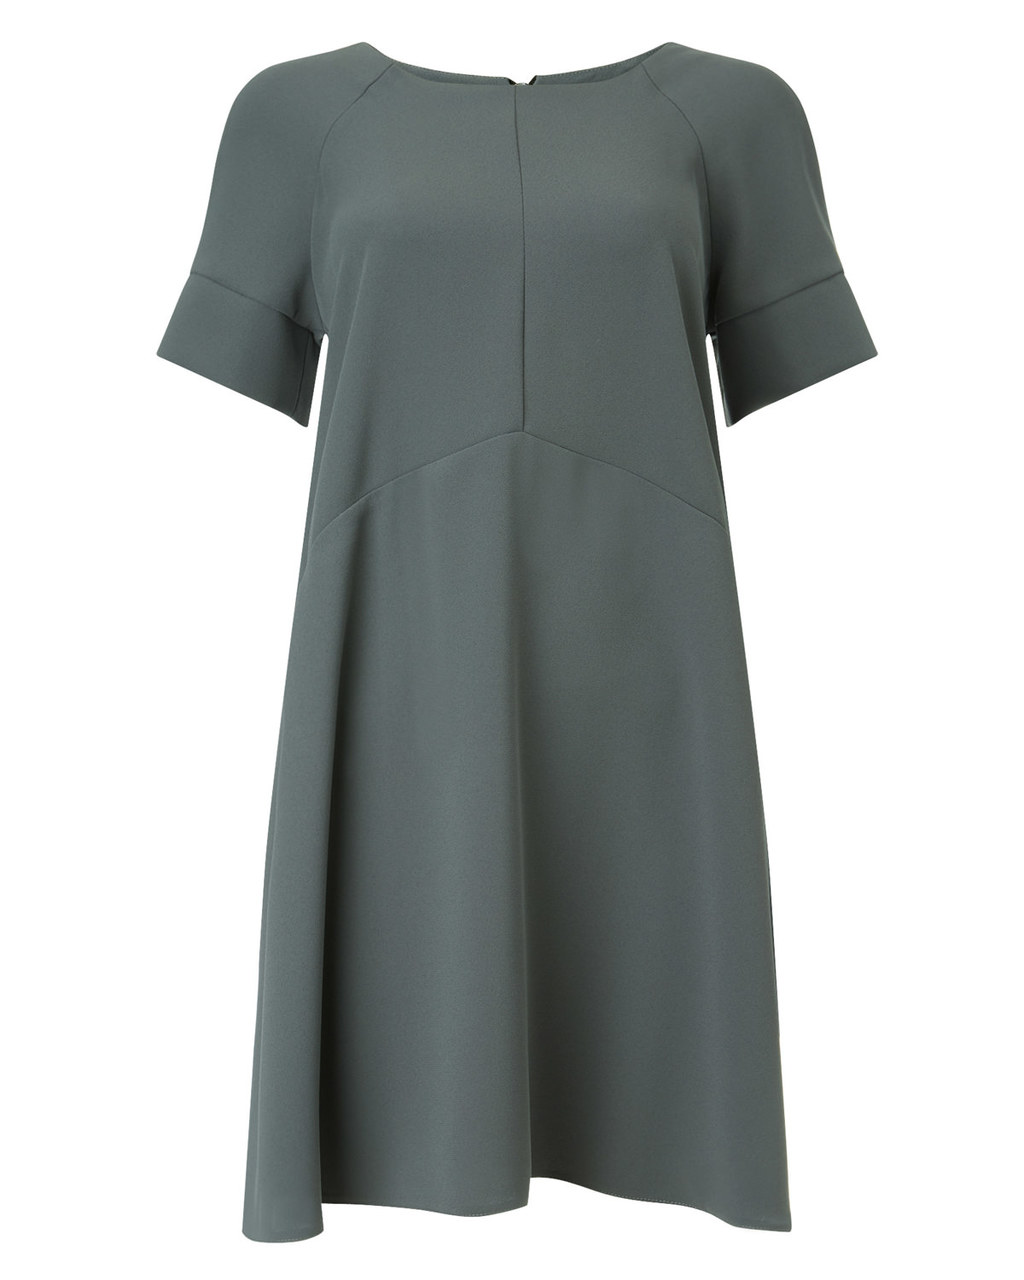 Zelda Dress - style: tunic; pattern: plain; predominant colour: charcoal; occasions: evening, creative work; length: just above the knee; fit: soft a-line; fibres: polyester/polyamide - 100%; neckline: crew; sleeve length: short sleeve; sleeve style: standard; texture group: crepes; pattern type: fabric; pattern size: standard; season: a/w 2015; wardrobe: investment